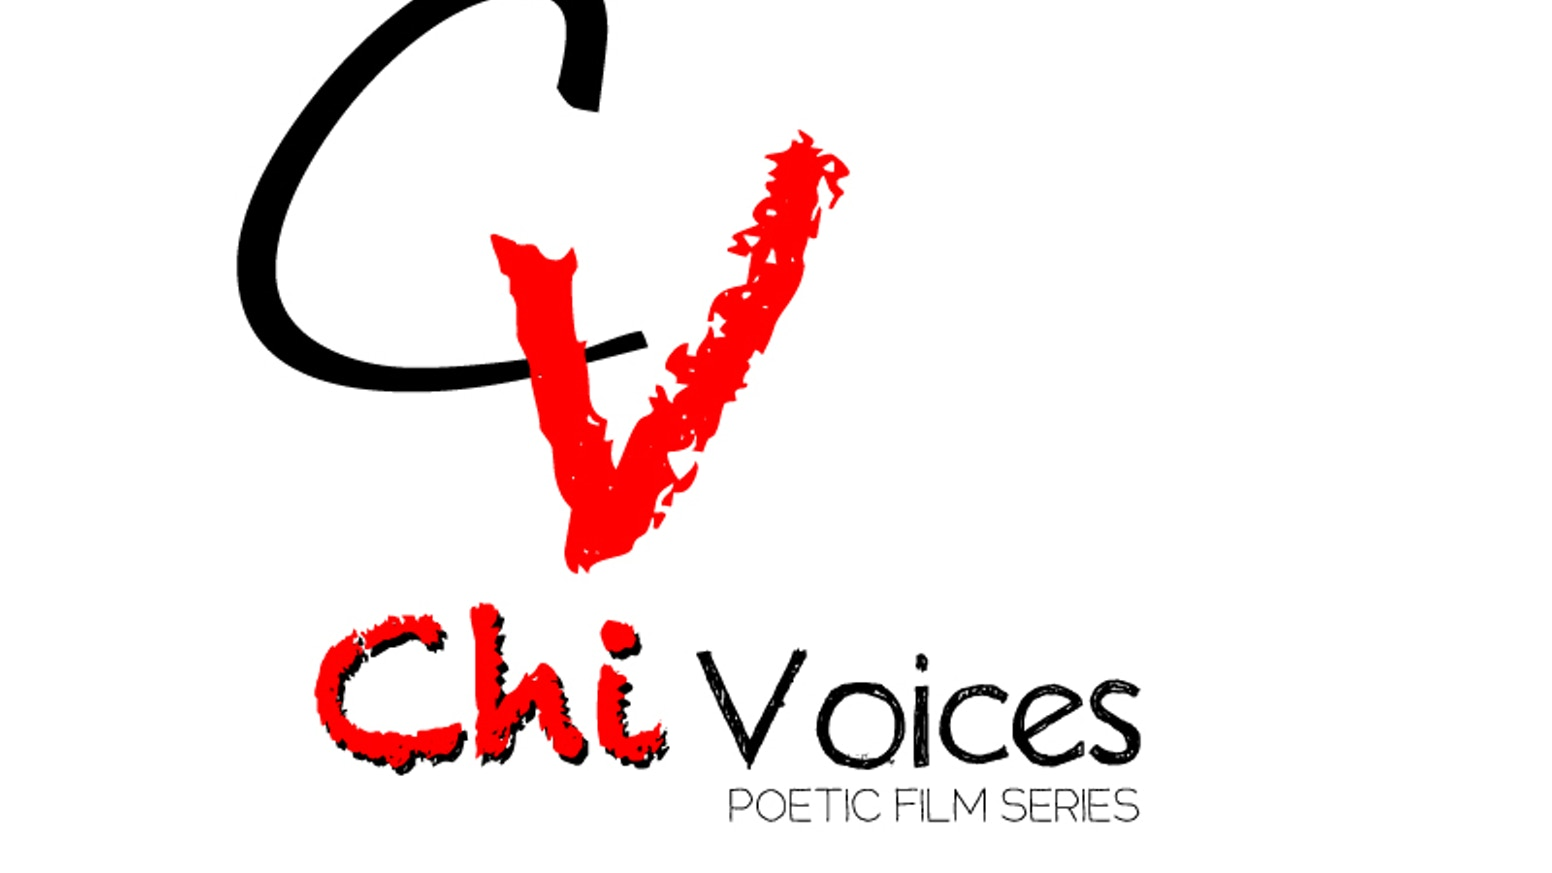 Chi~Voices is a multi-part film series where Spoken Word artists creatively express themselves about youth violence in Chicago.